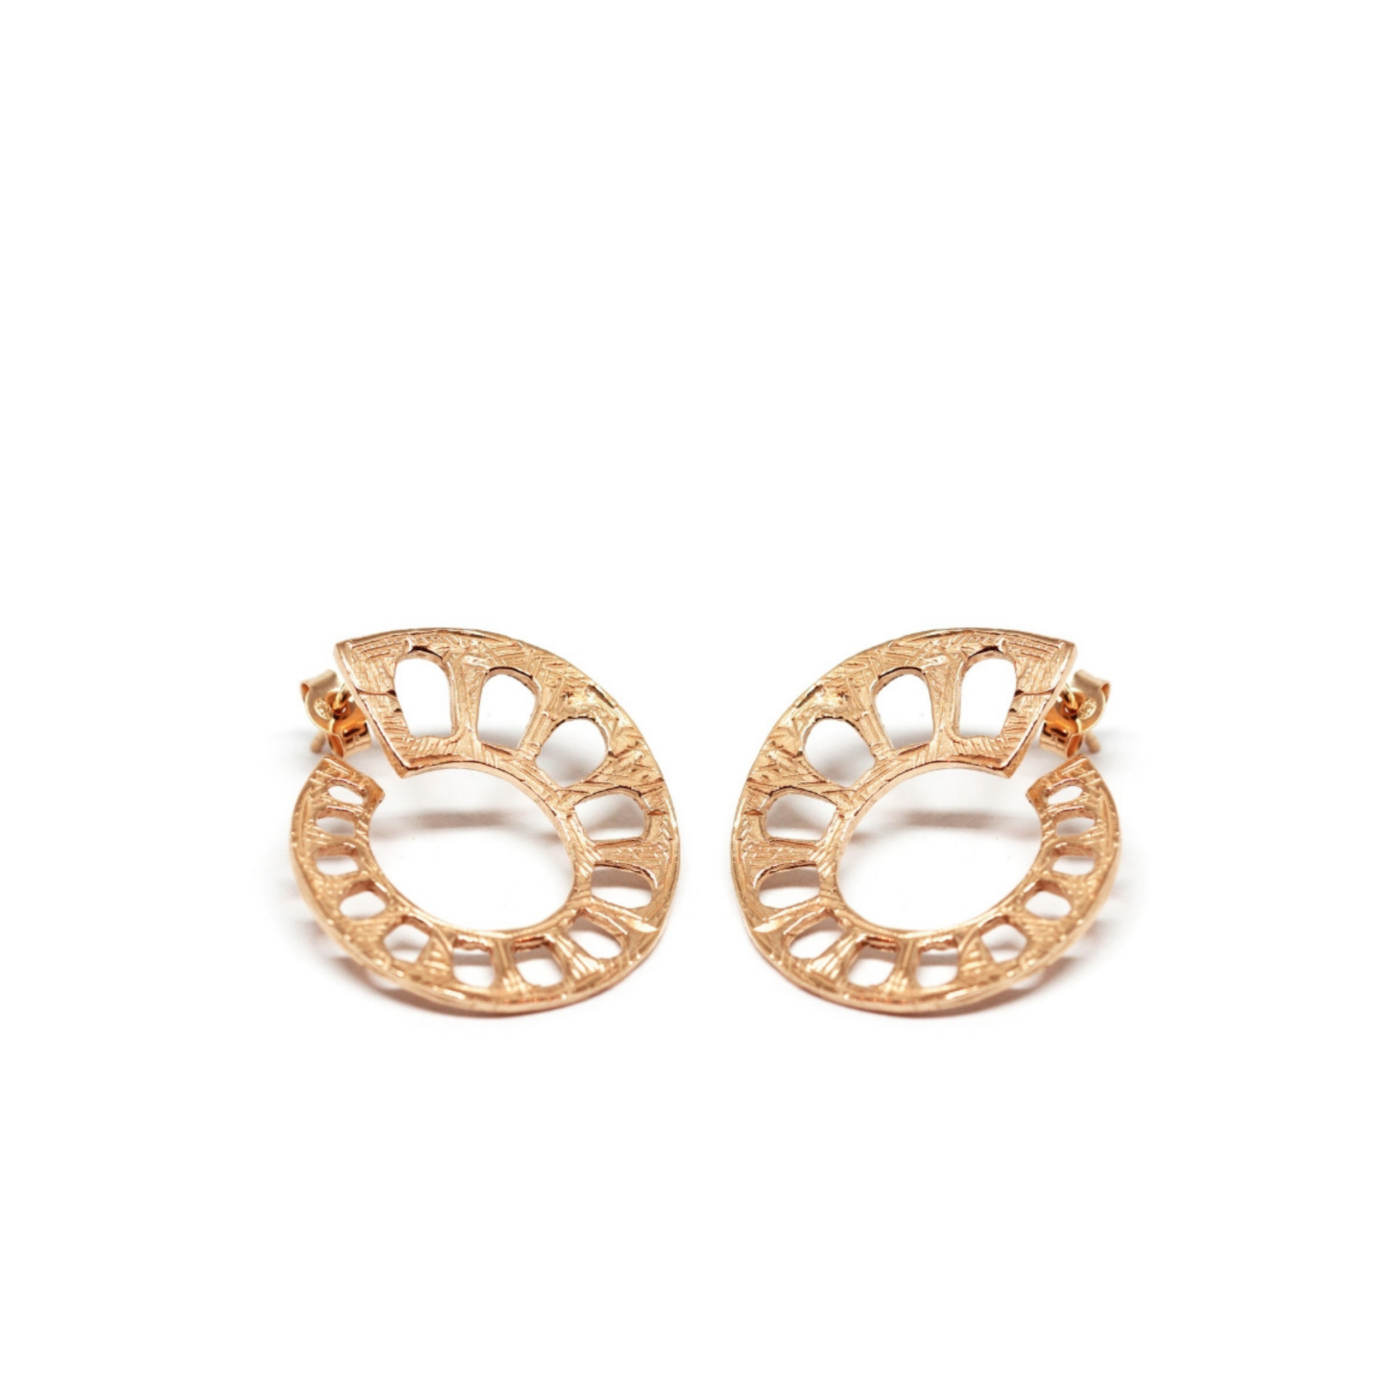 Aqueduct Earrings Rose Gold Plated Silver